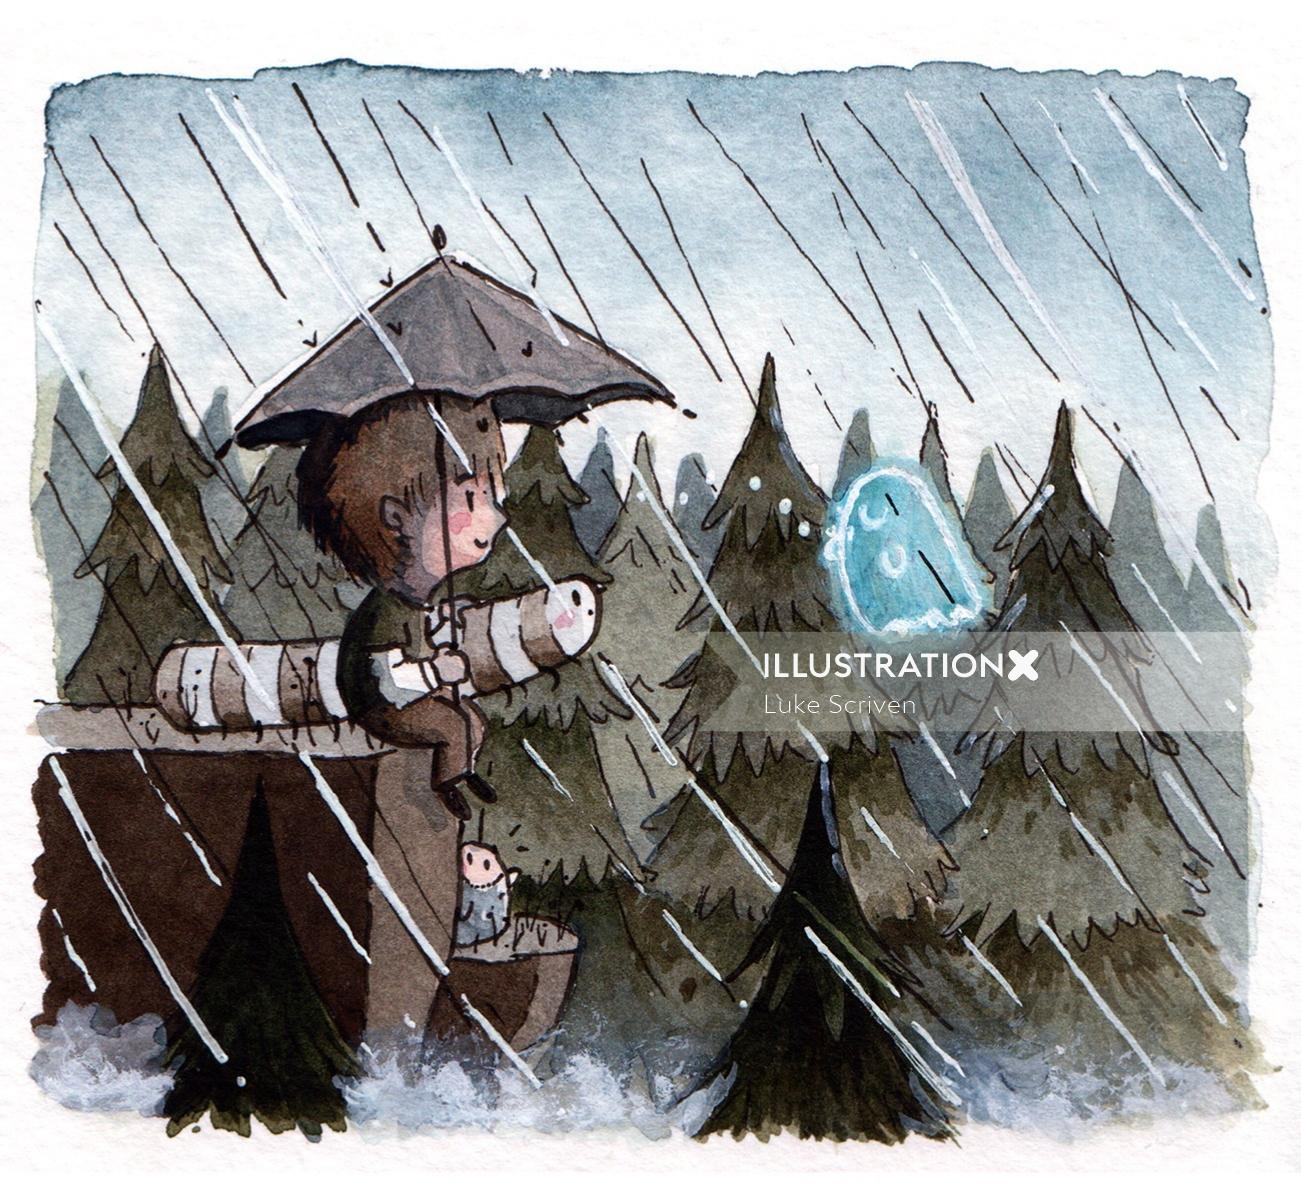 LIttle boy and ghost in rain